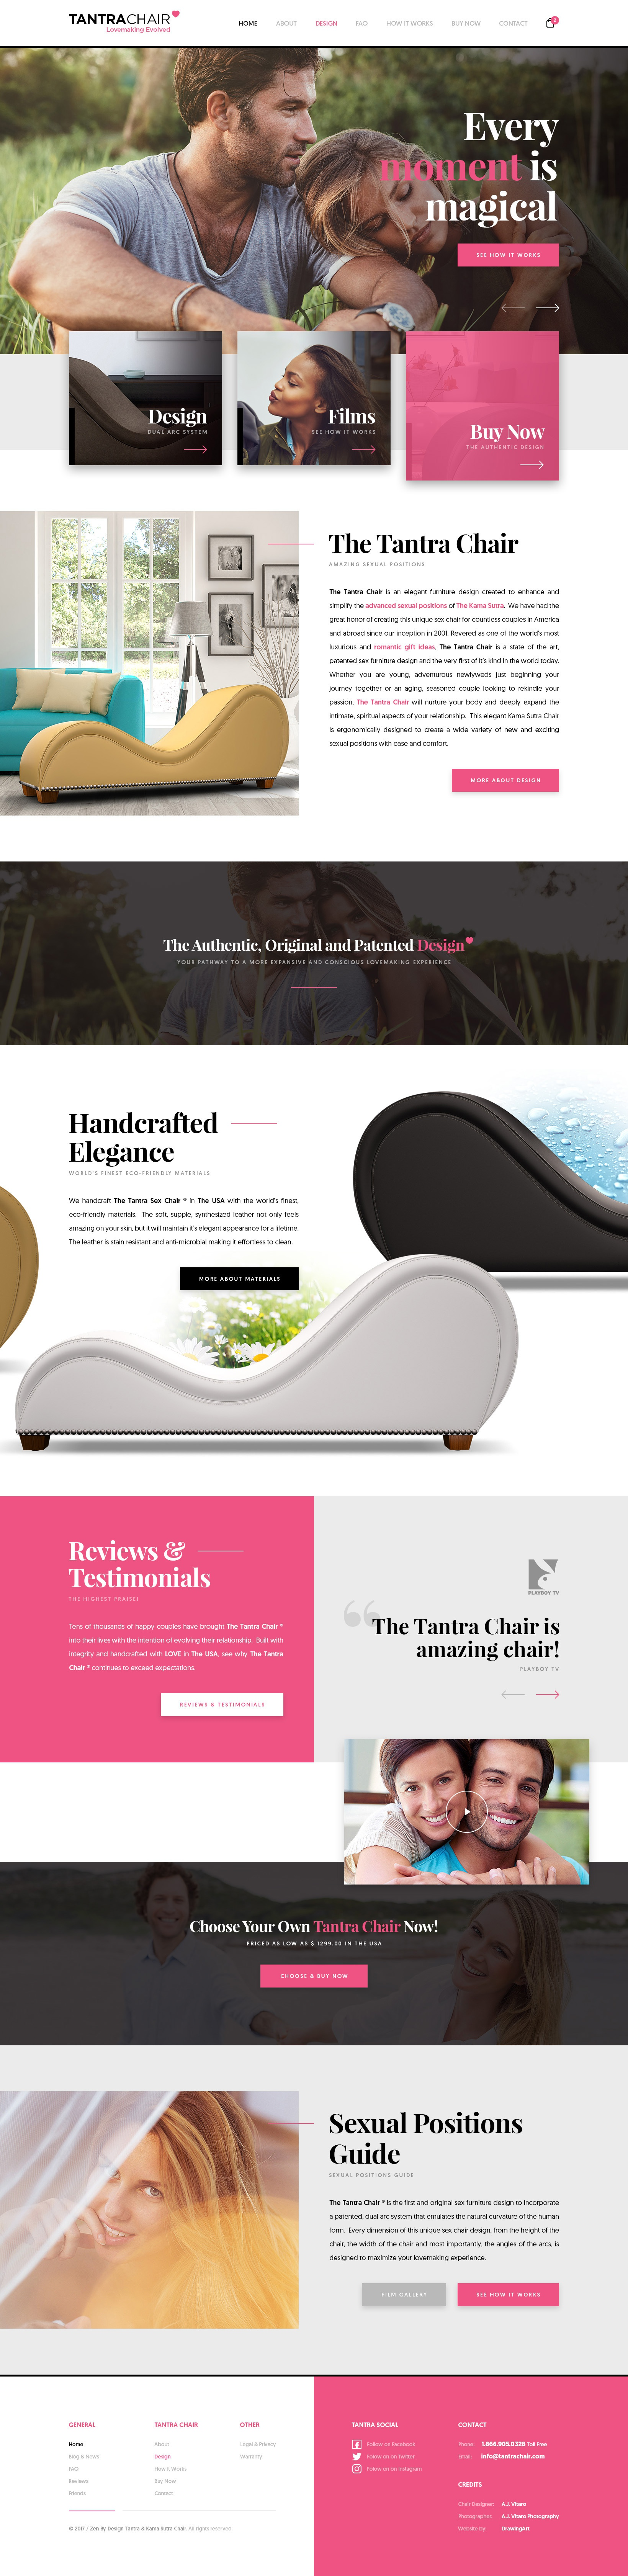 Tantrachair2017 home · The Tantra Chair  sc 1 st  Dribbble & Miro Koljanin / Projects / The Tantra Chair - Dribbble